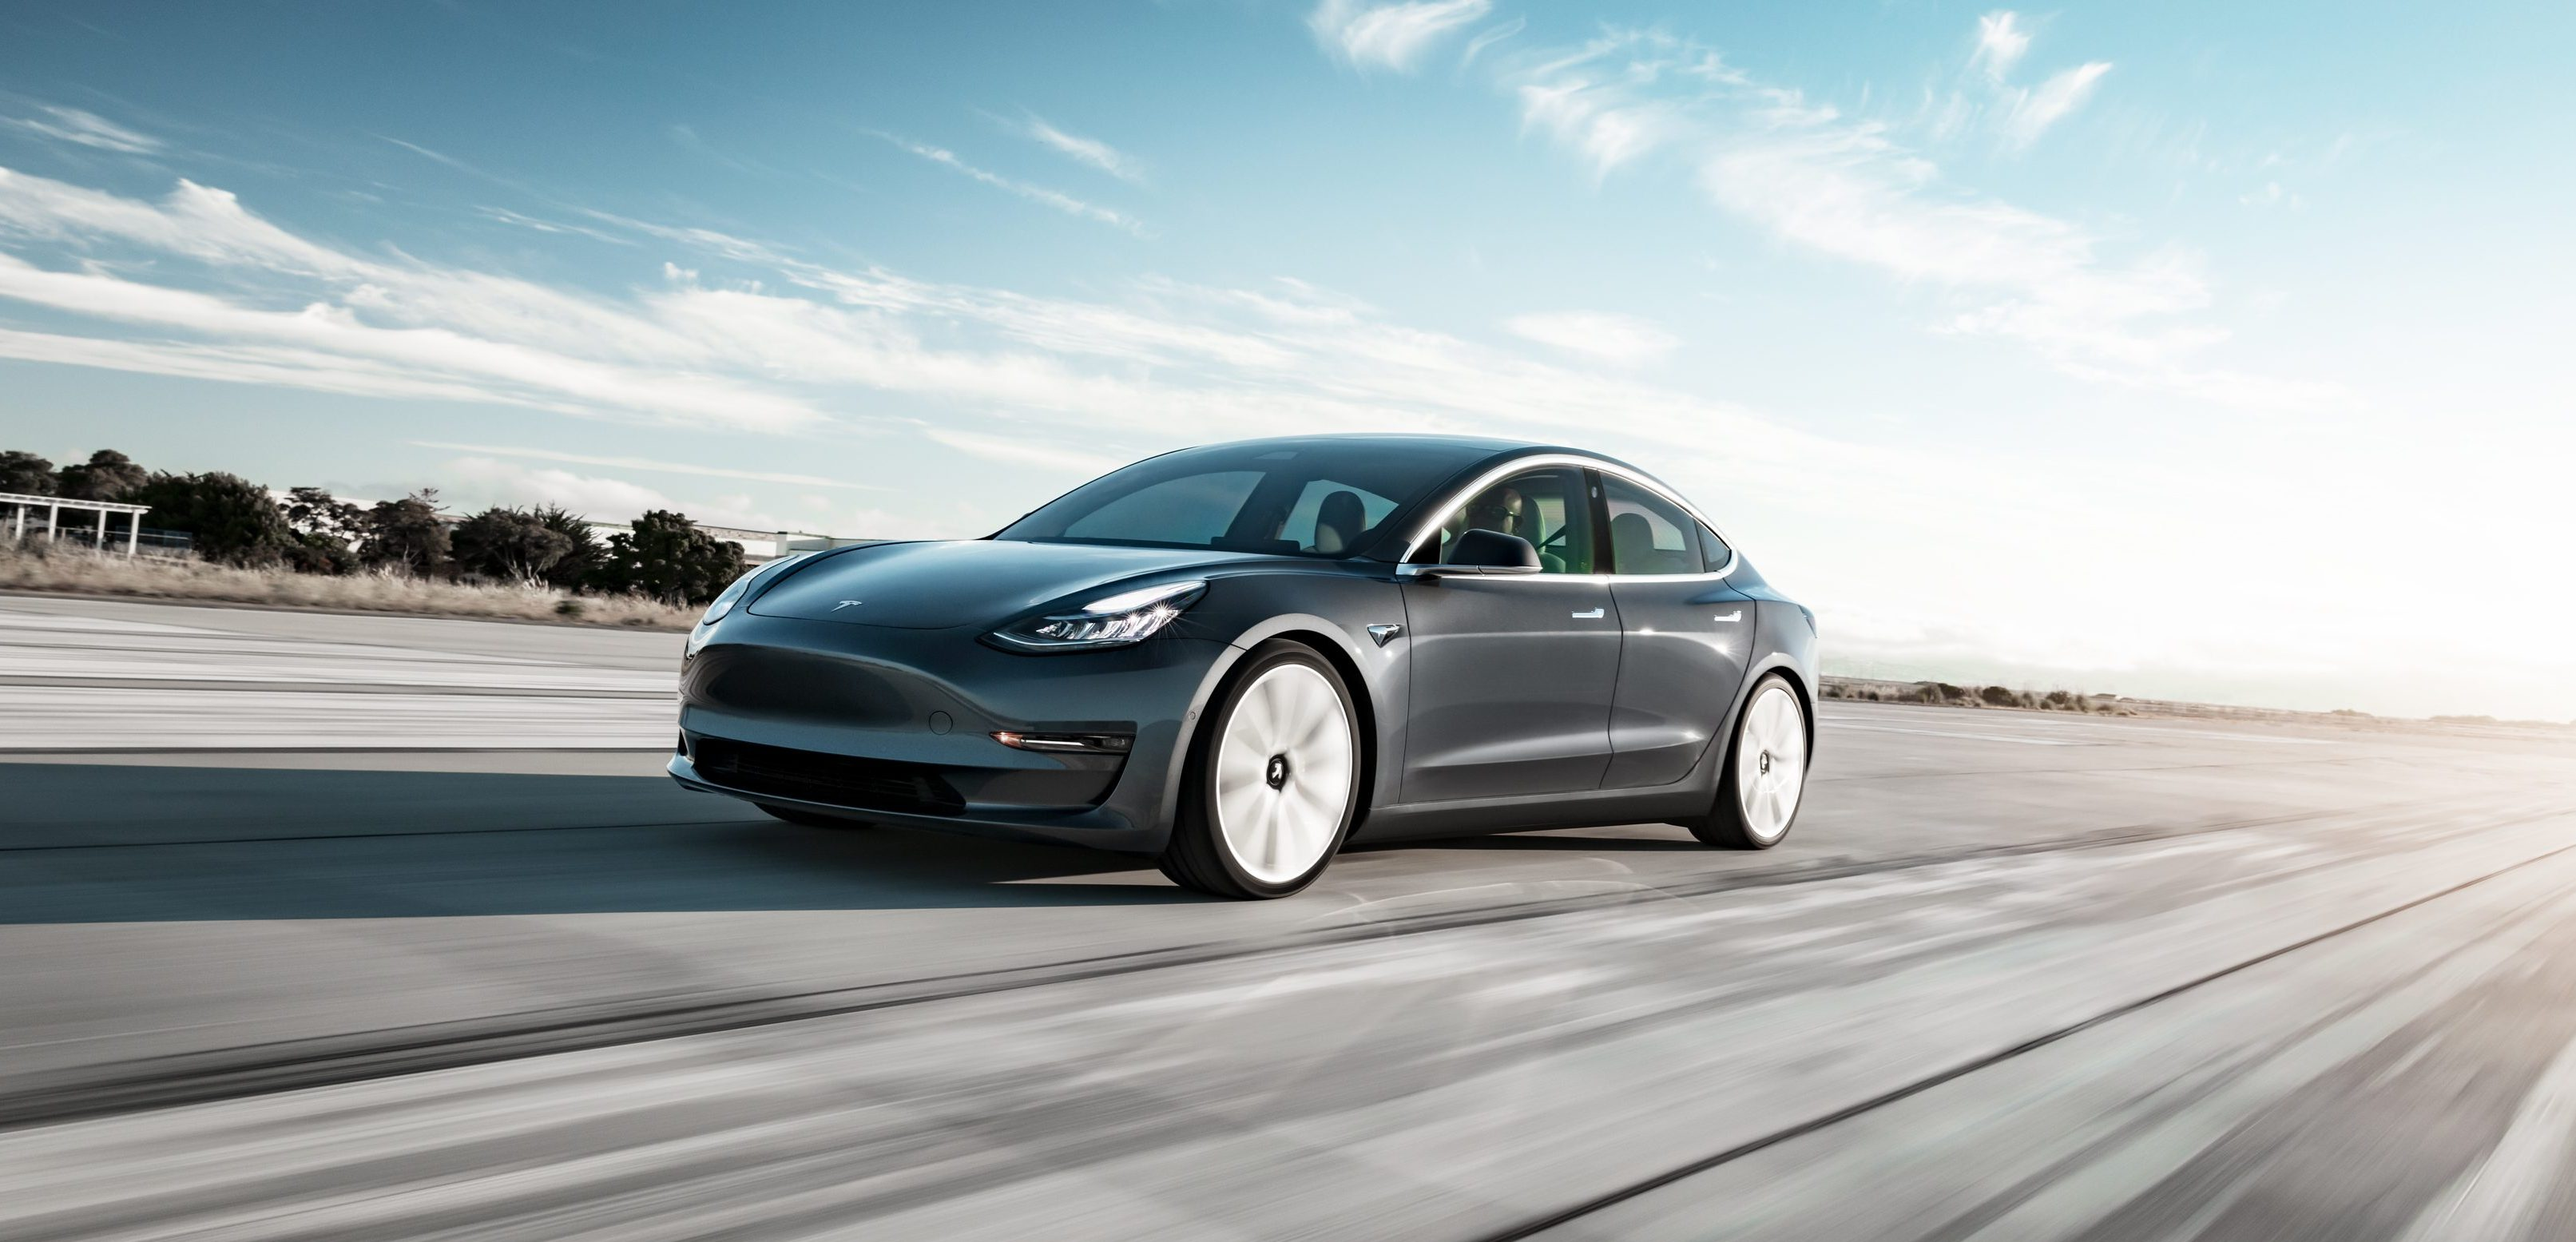 Tesla's new Model 3 is not just a demand booster, it's also a production ramp enabler